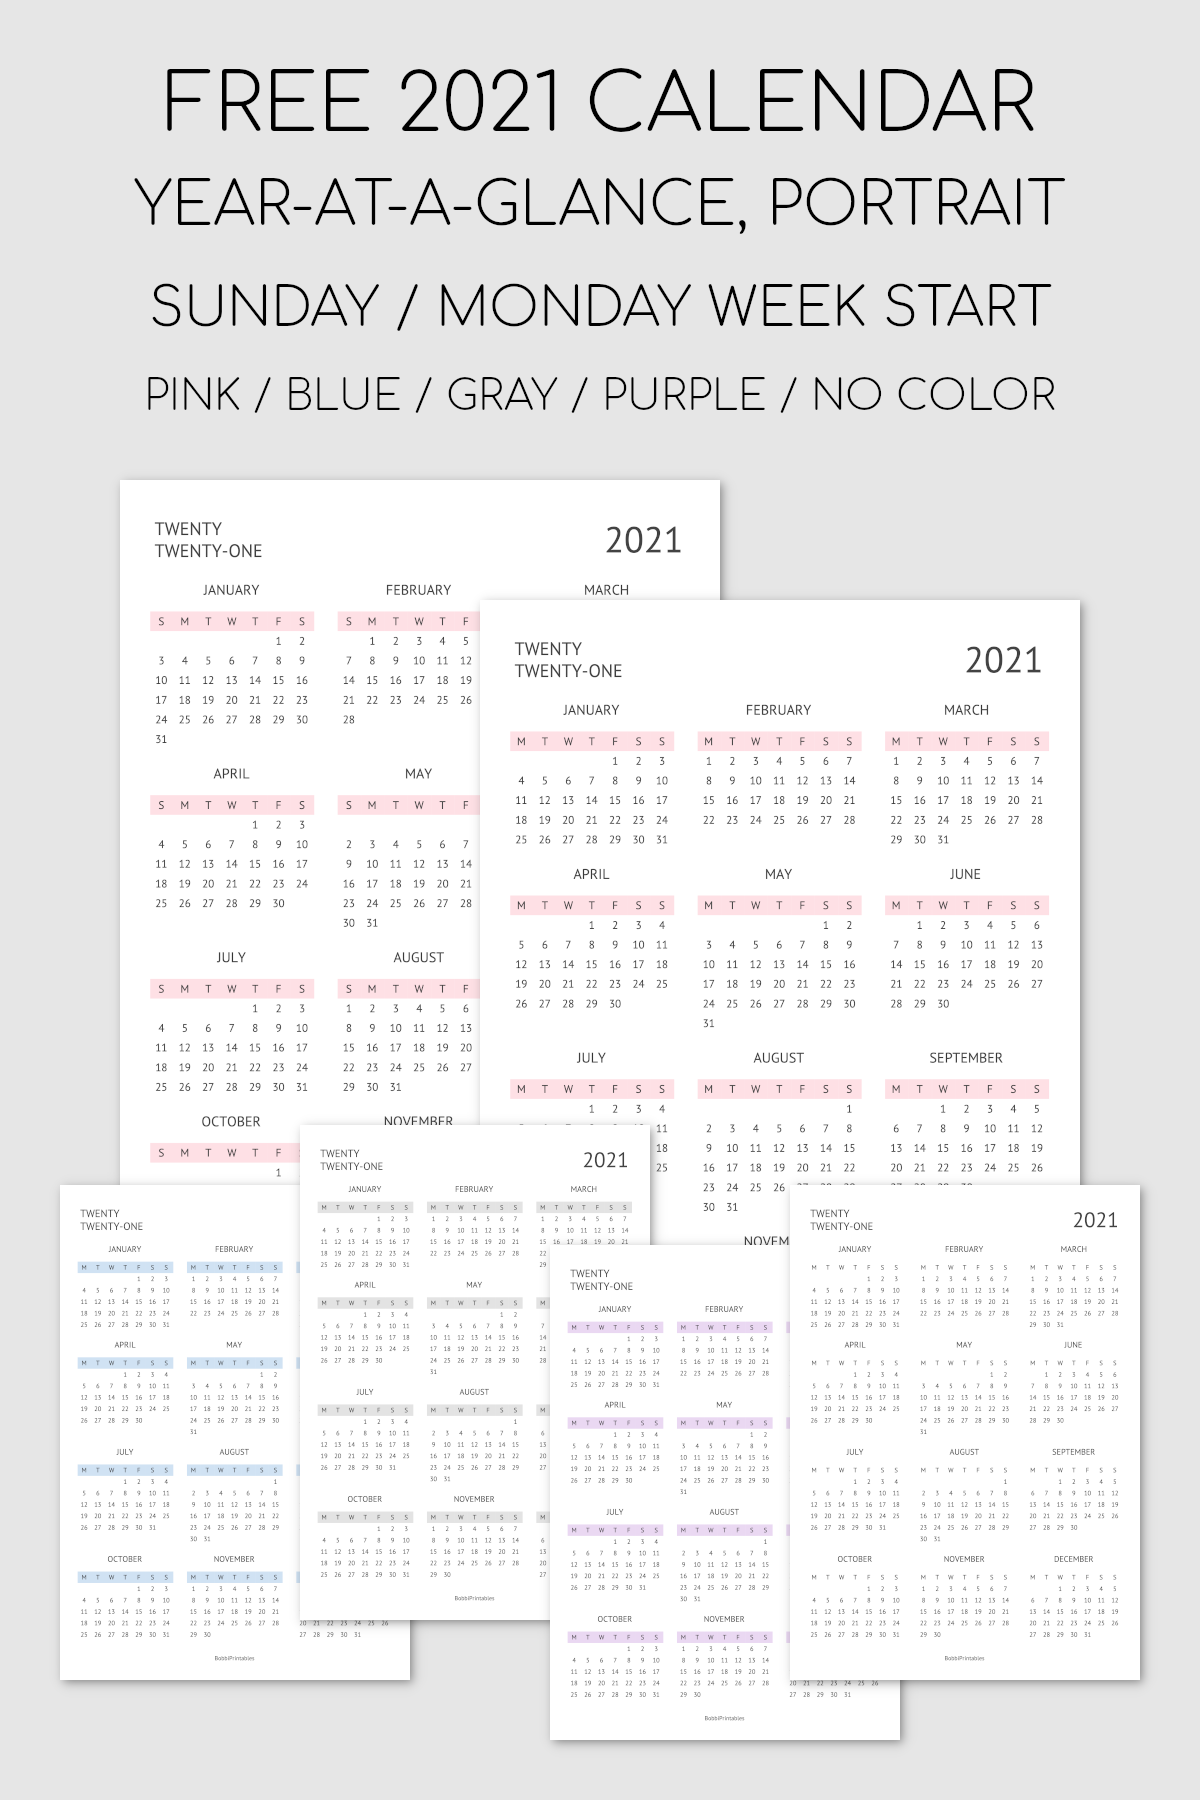 Printable 2021 Year-At-A-Glance Calendar